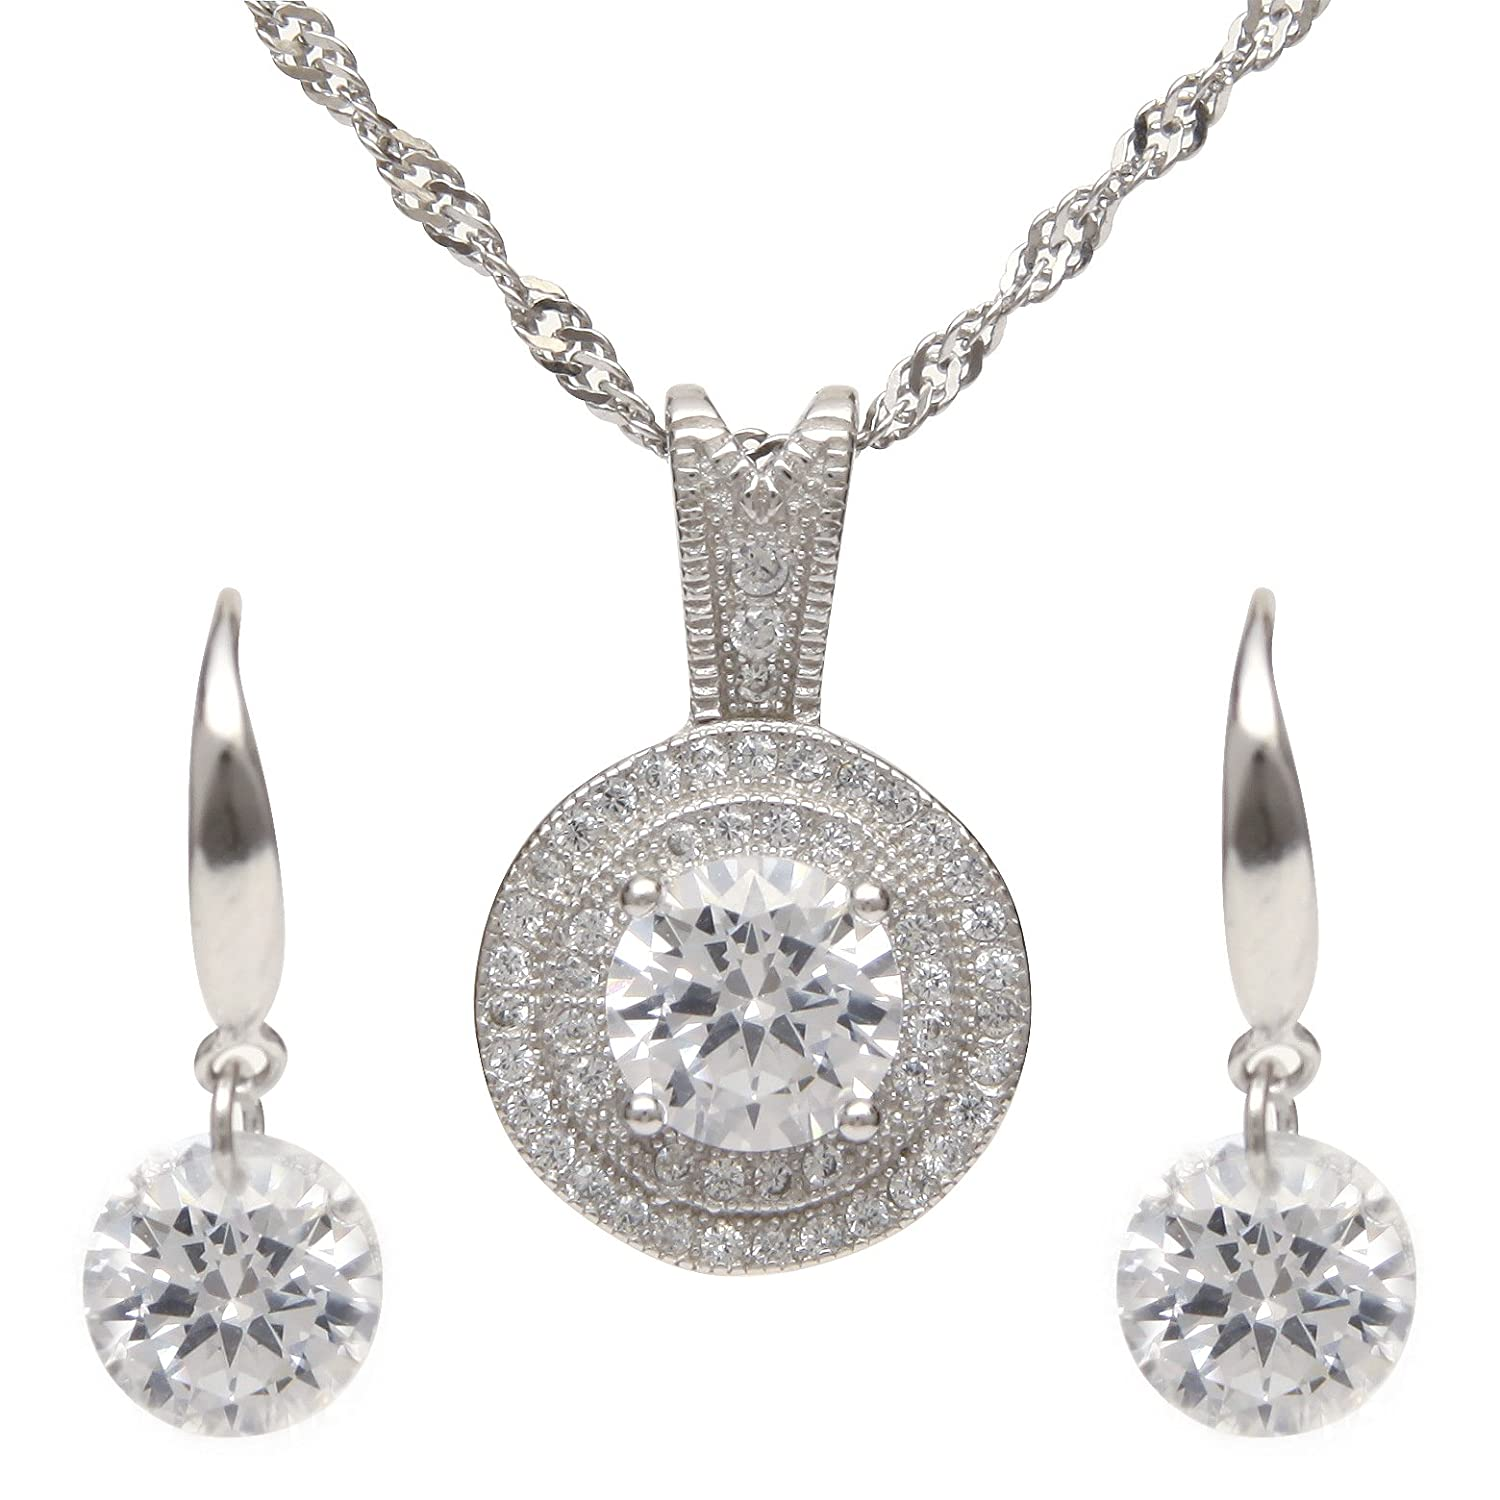 1.25 CT AAA Grade Cubic Zirconia Necklace and Earrings Jewelry Set